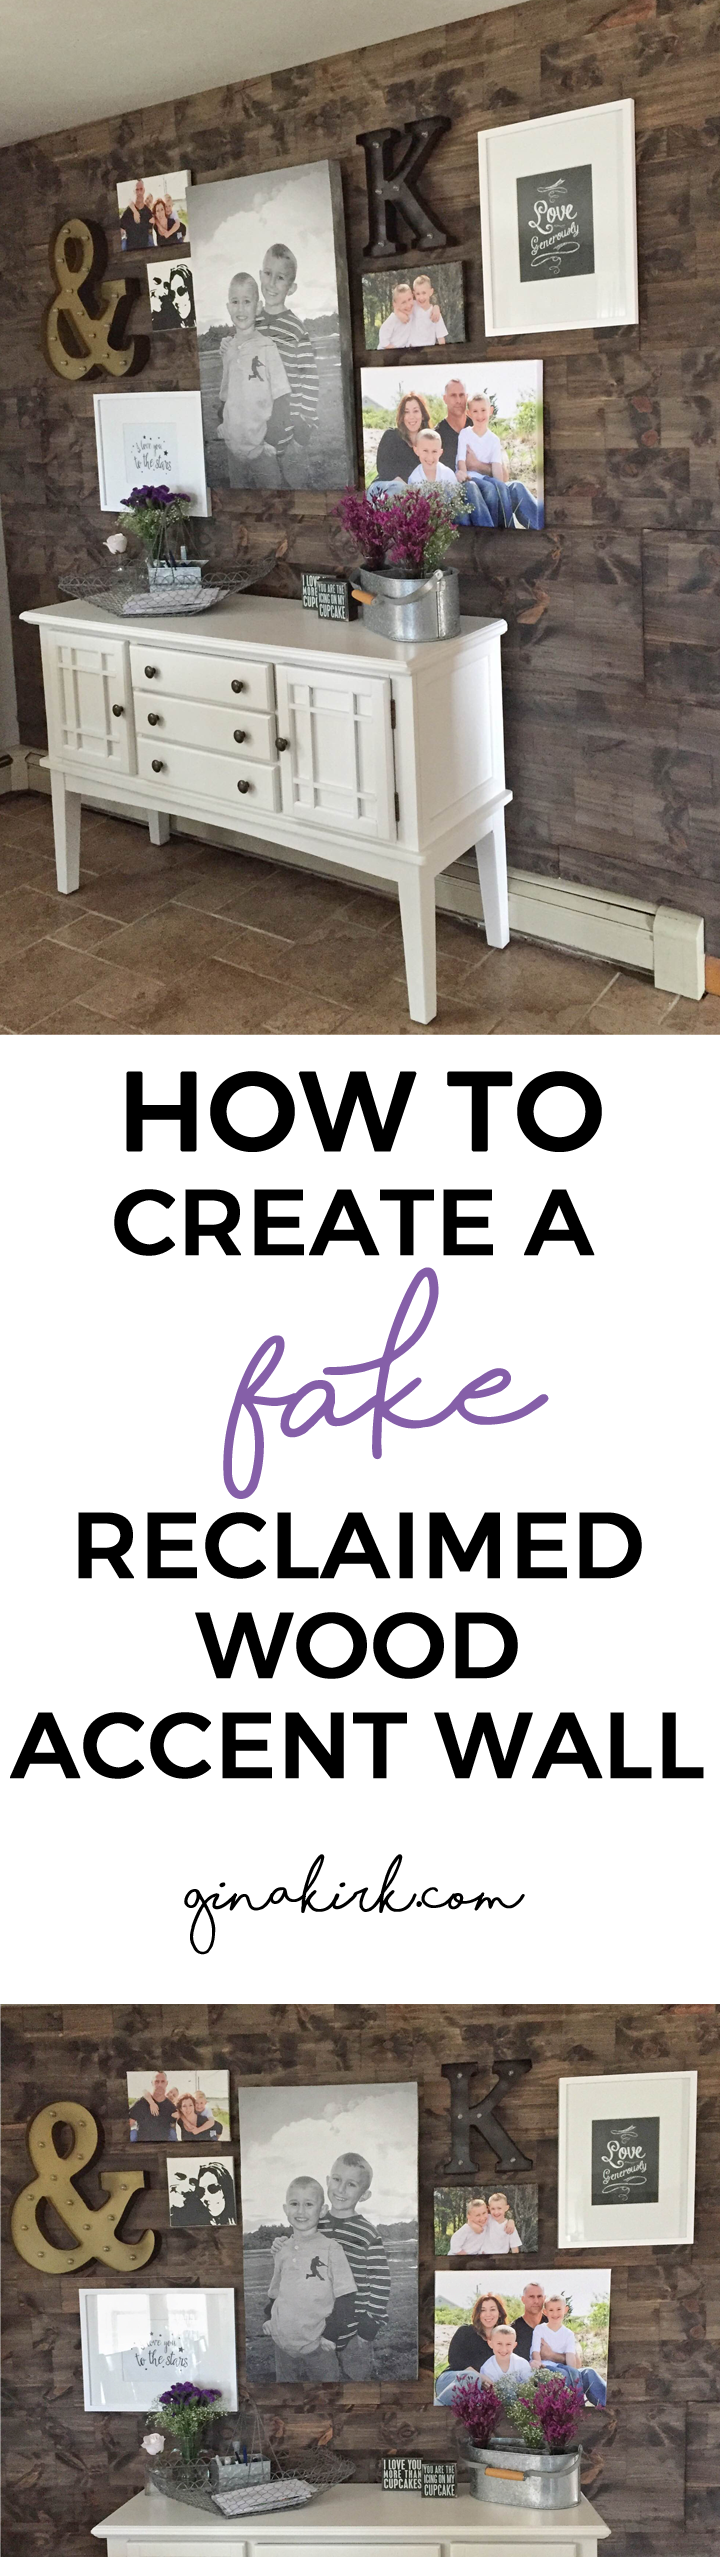 How to fake a reclaimed wood accent wall - faux reclaimed wood accent wall - DIY tutorial! GinaKirk.com